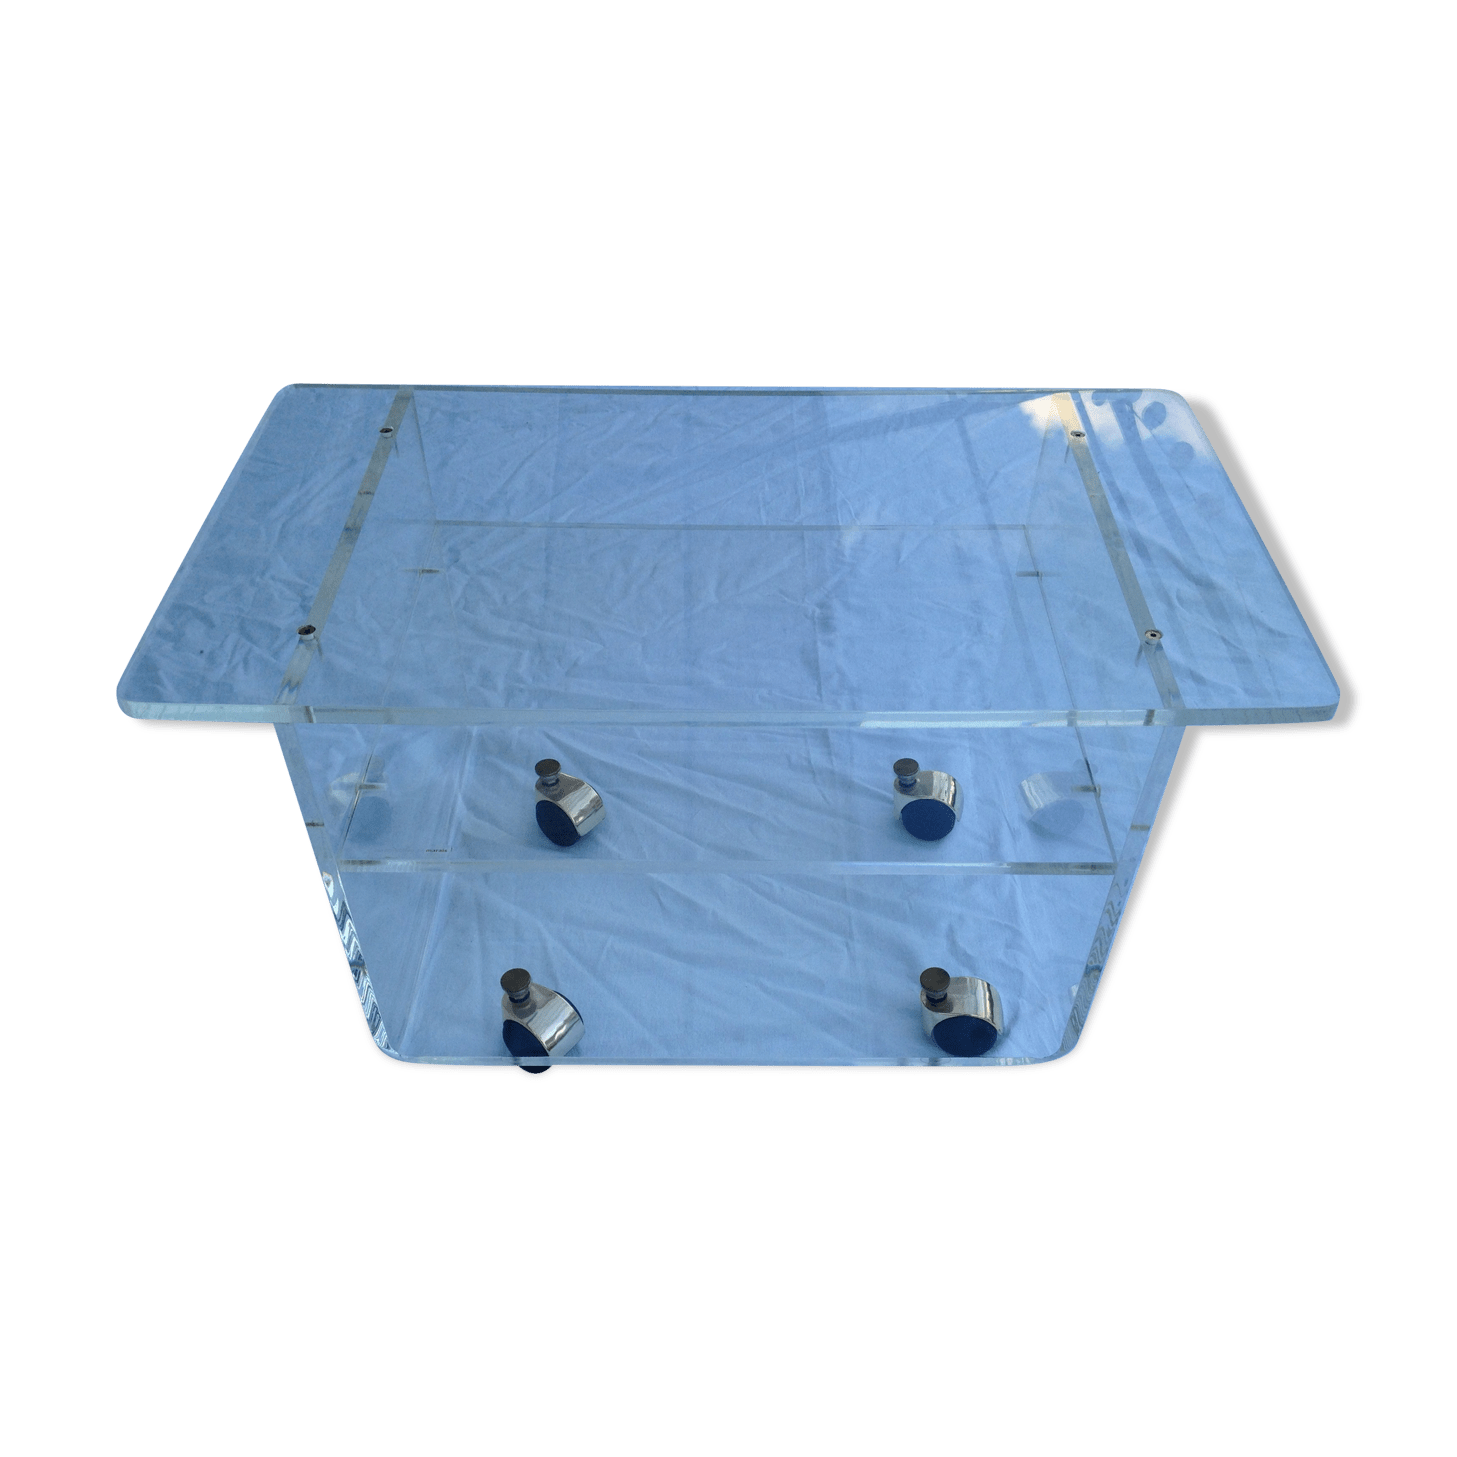 Table Plexiglas Transparent Table Basse Plexiglas De Marais With Table Basse Plexiglas